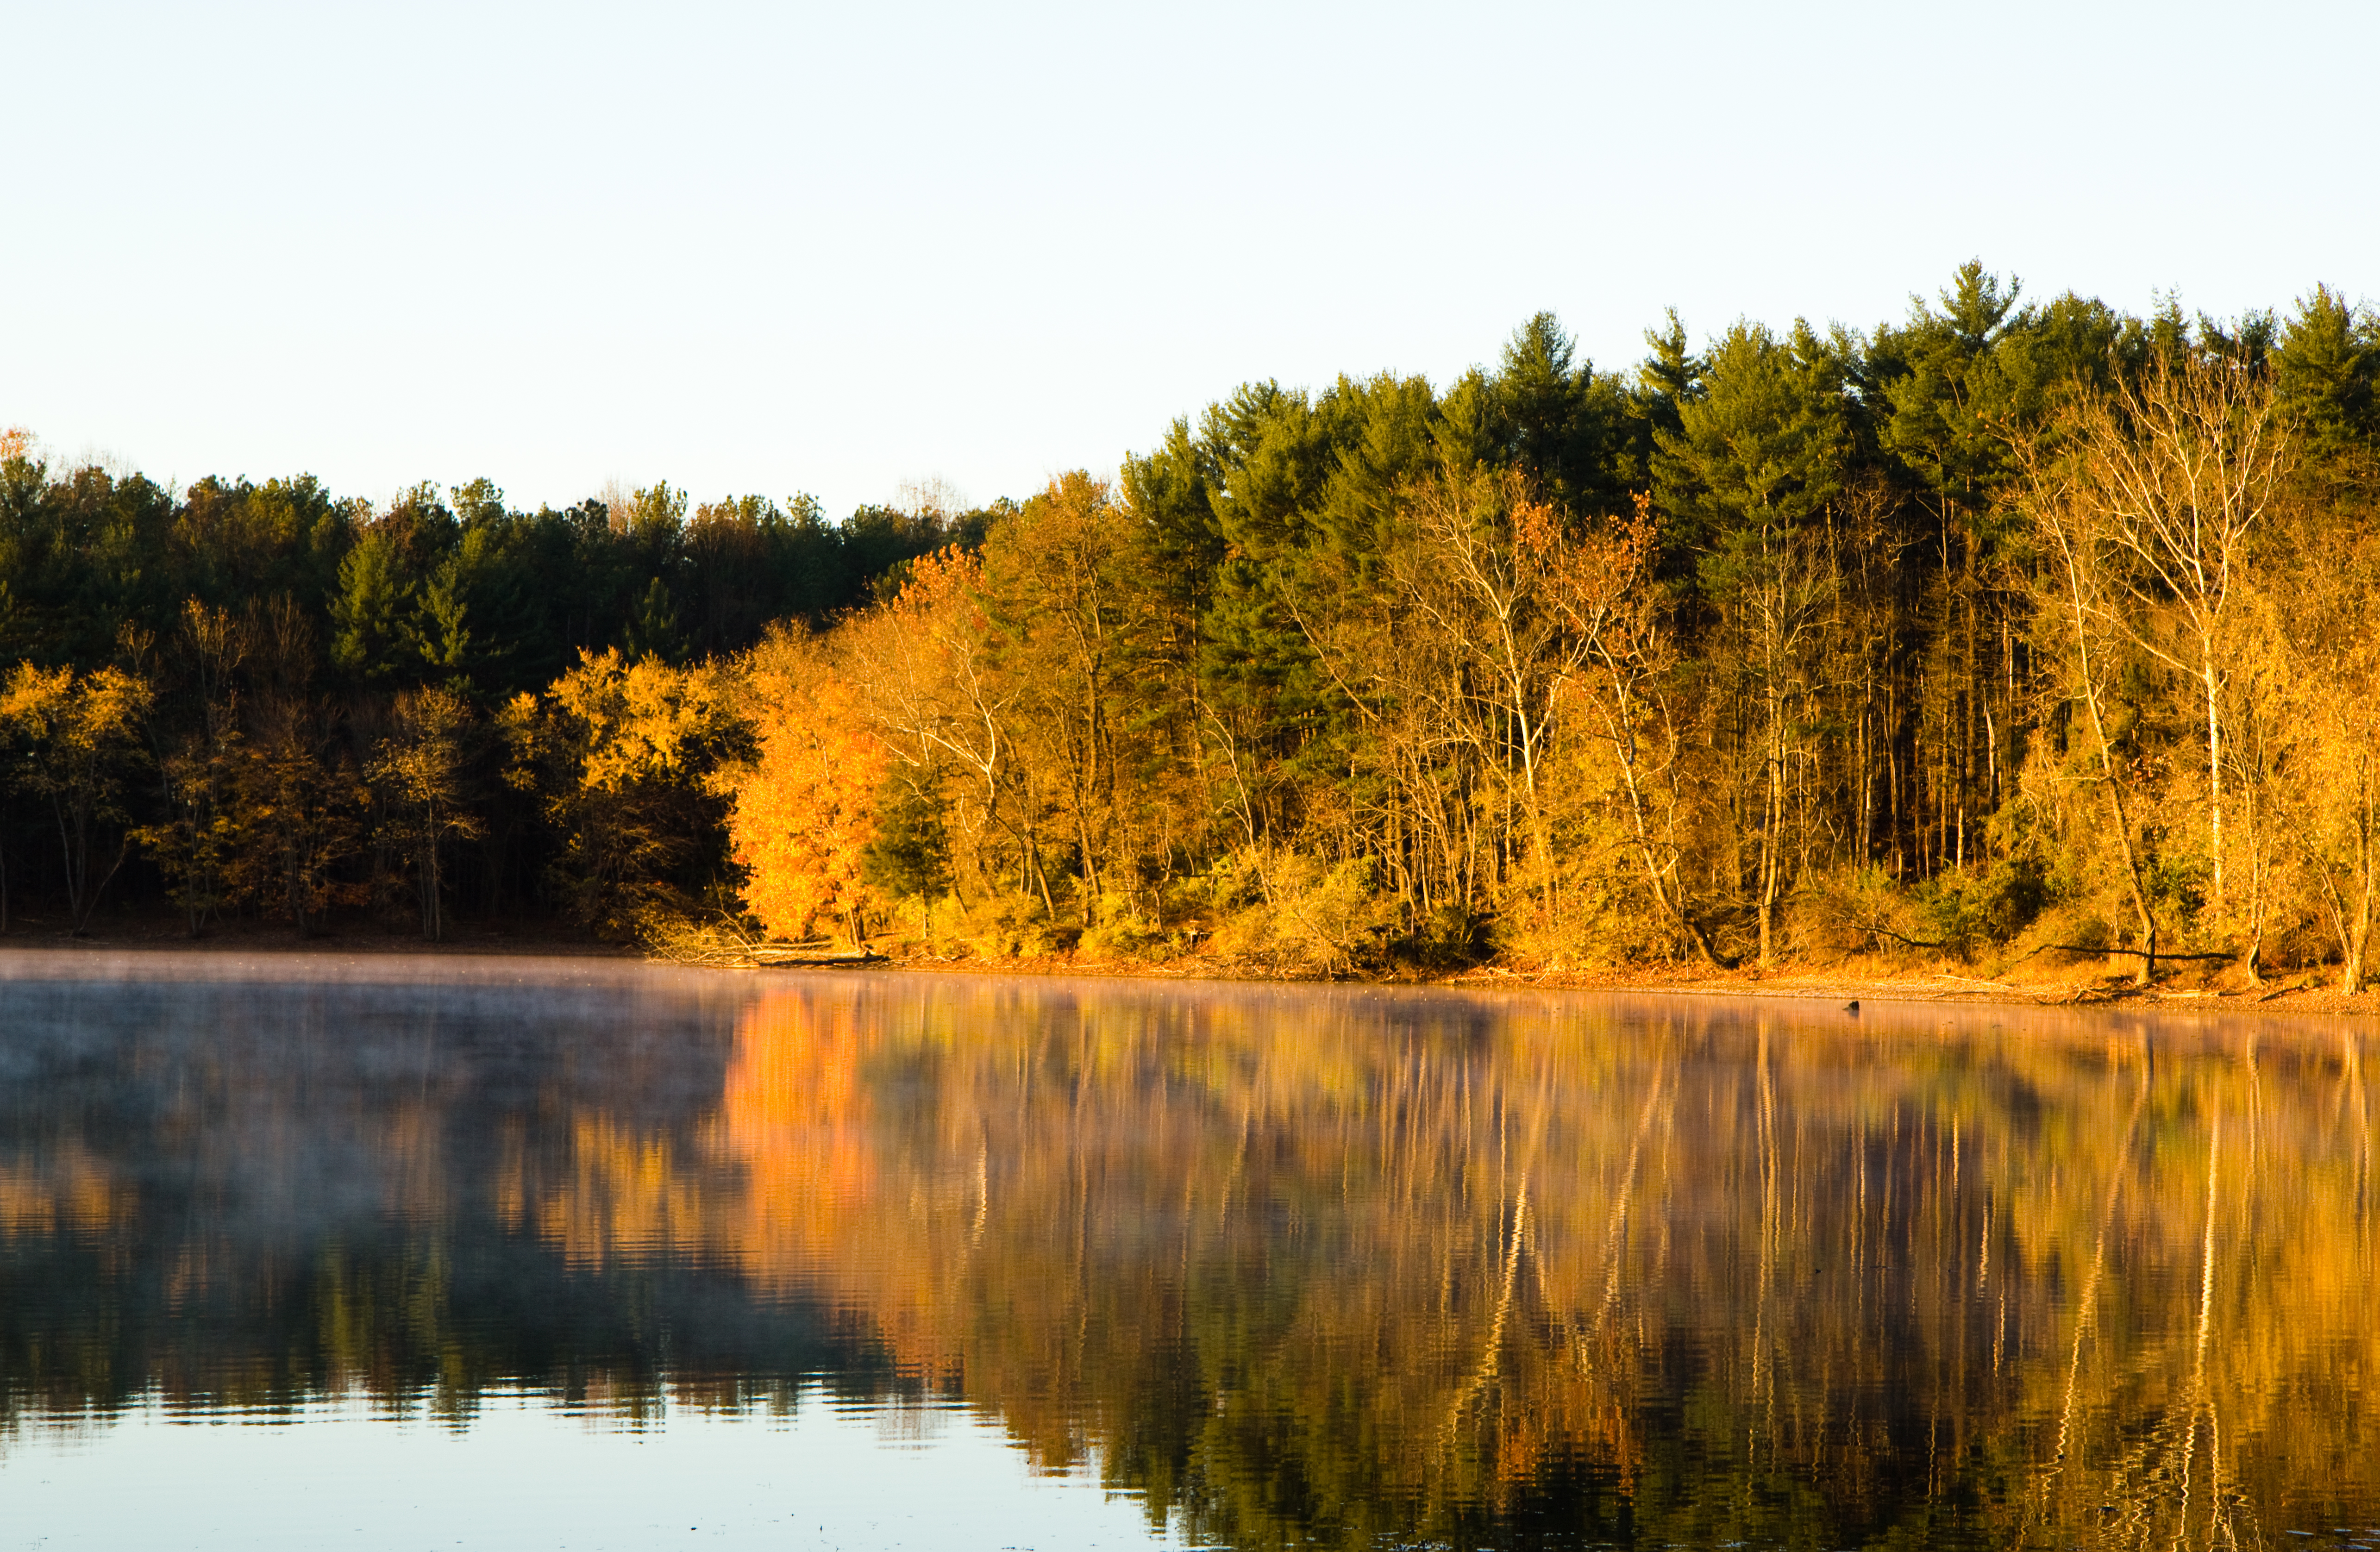 Fall image of Loch Raven Reservoir with Reflection of trees in water,6, Mike, Flickr,